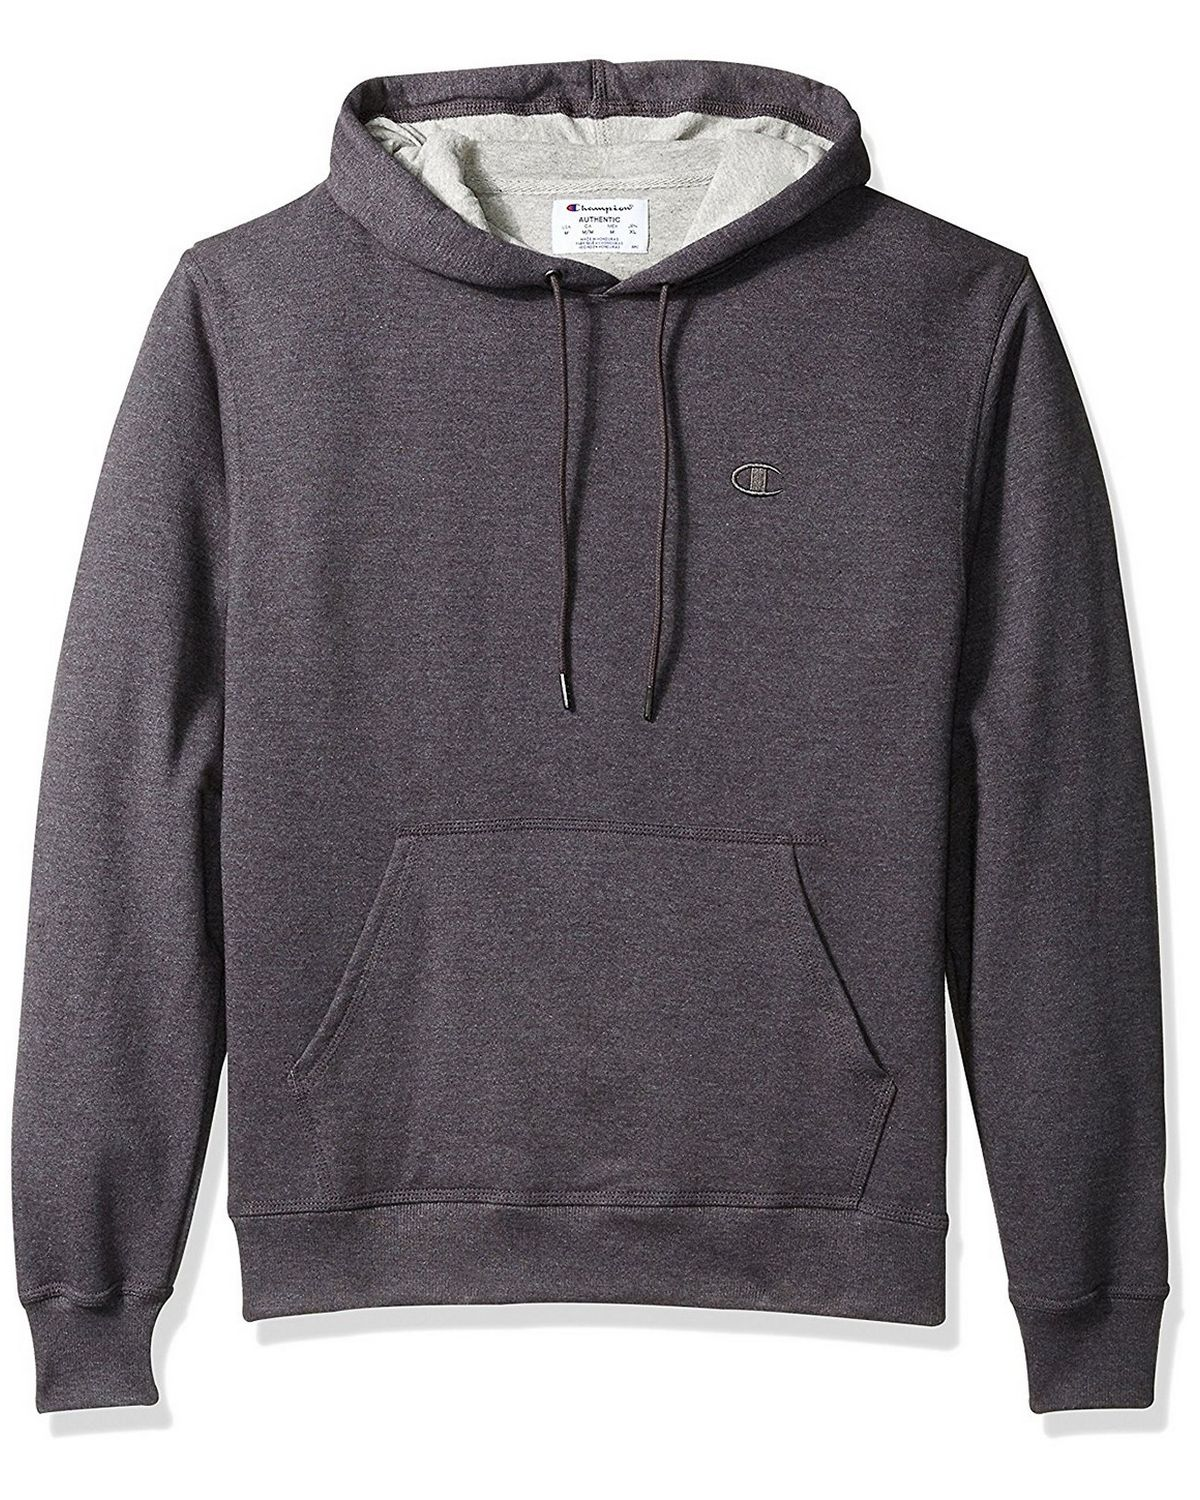 Champion S0889 Mens Fleece Pullover Hoodie - Granite Heather - XL S0889